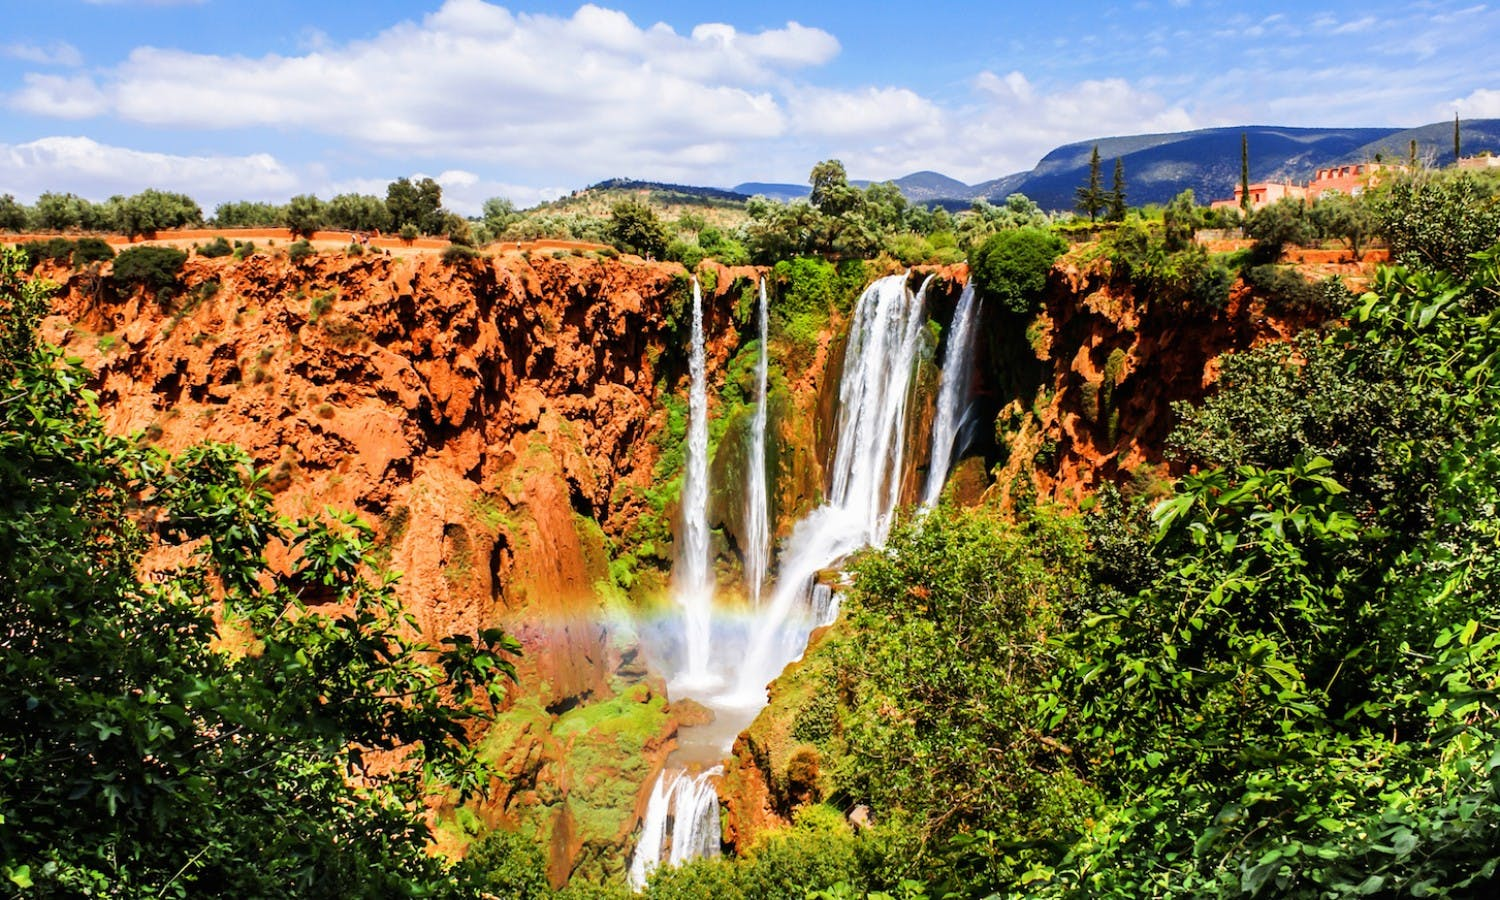 Day tour to the Magic Ouzoud falls from Marrakech